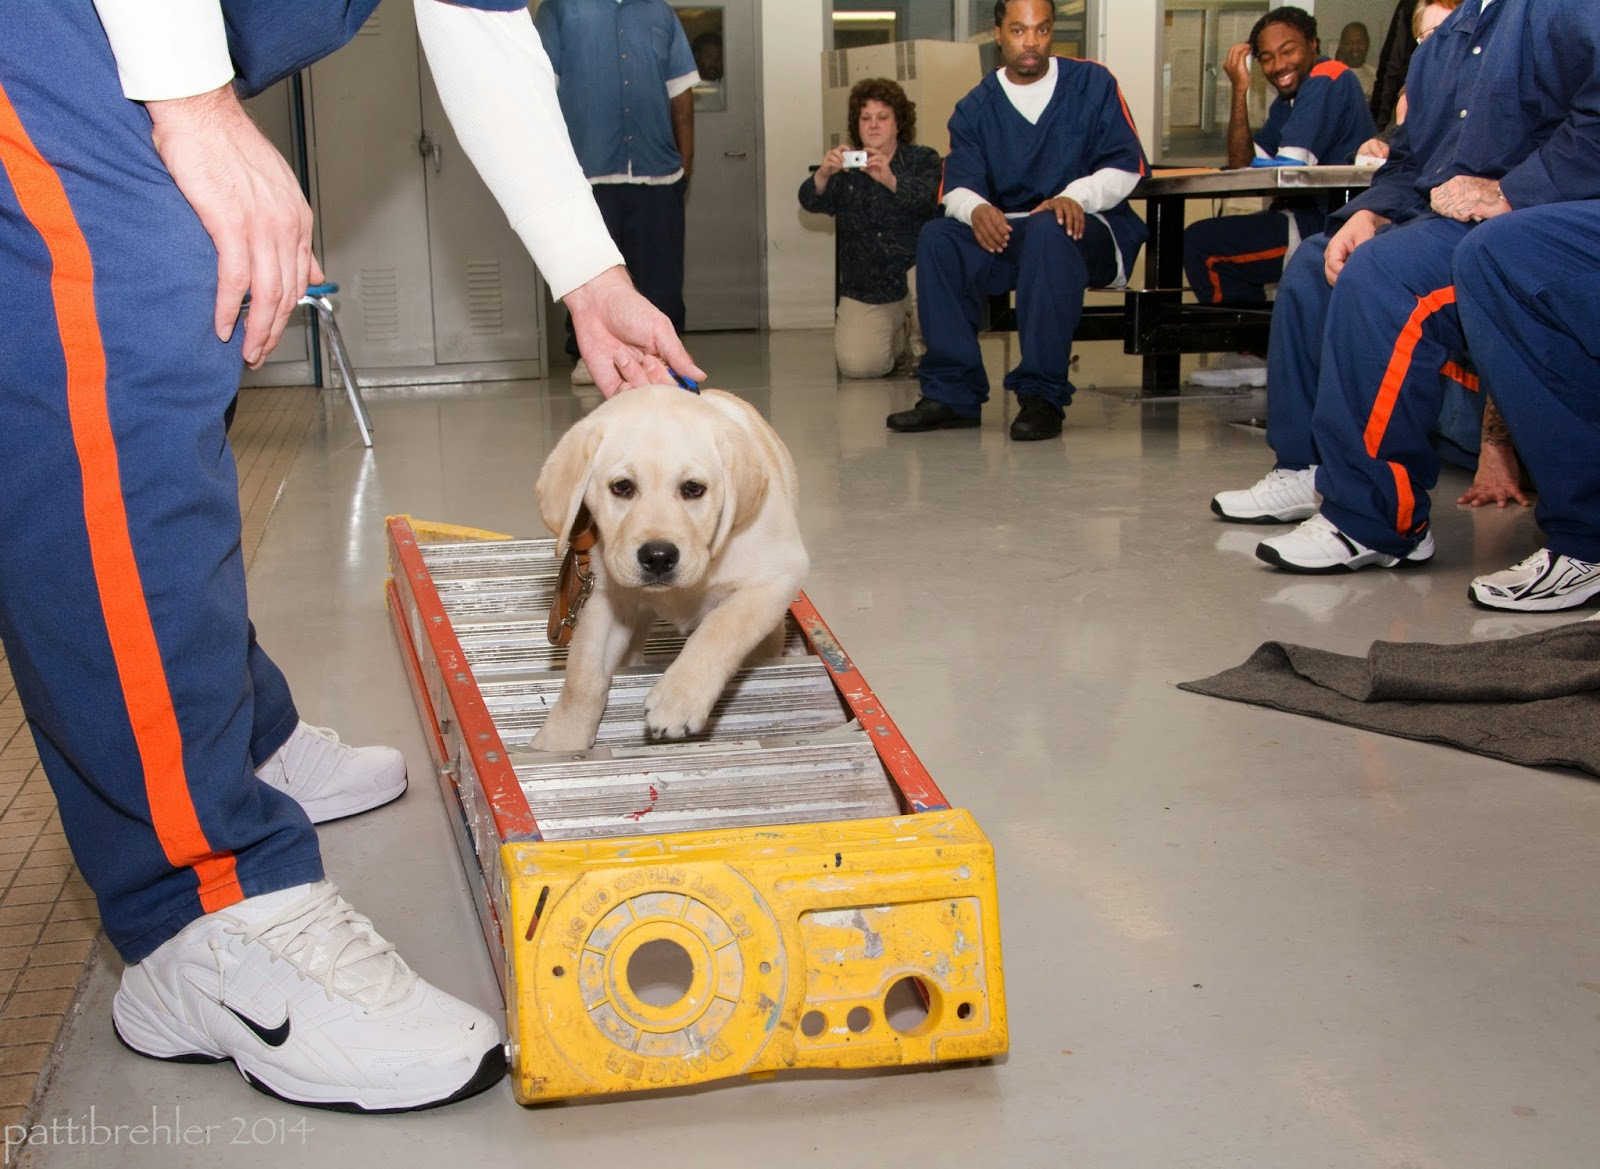 Men dressed in the blue and orange striped prison uniforms sit in the background watching an inmate raiser guide his yellow lab puppy through the rungs of a ladder. The ladder is laying on the tile floor toward the camera. The raiser on the left is mostly out of view, He is bending at the waits and his left hand is holding the collar of the yellow lab puppy. The puppy is stepping over the rungs of the ladder, looking right at the camera.